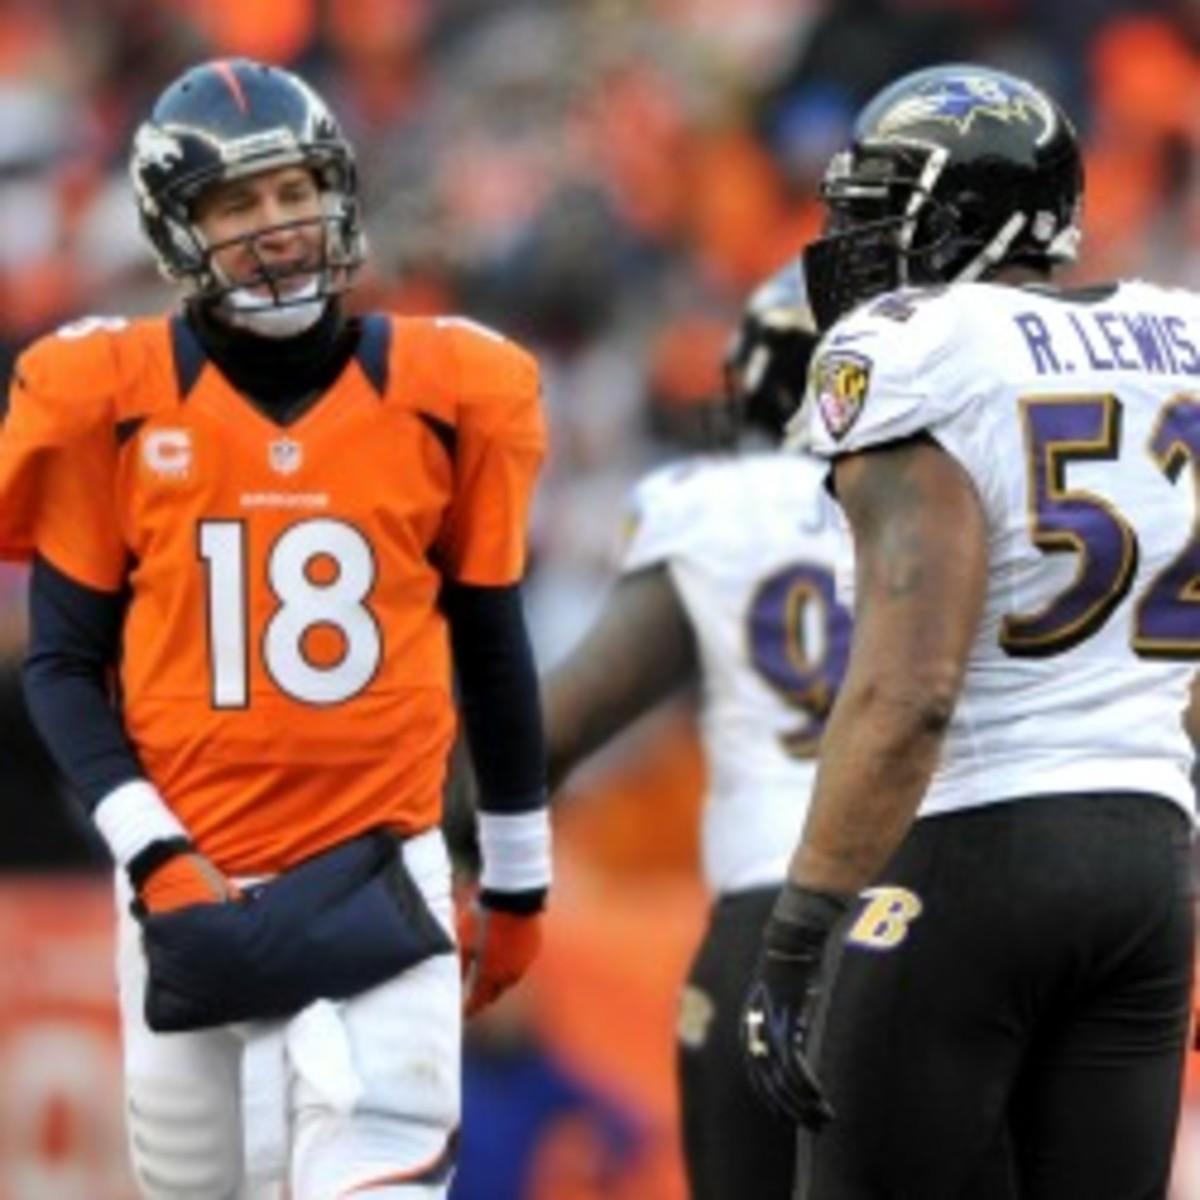 Broncos quarterback Peyton Manning threw 37 regular-season touchdown passes, but his overtime interception led to a second-round playoff exit. (Dustin Bradford/Getty Images)